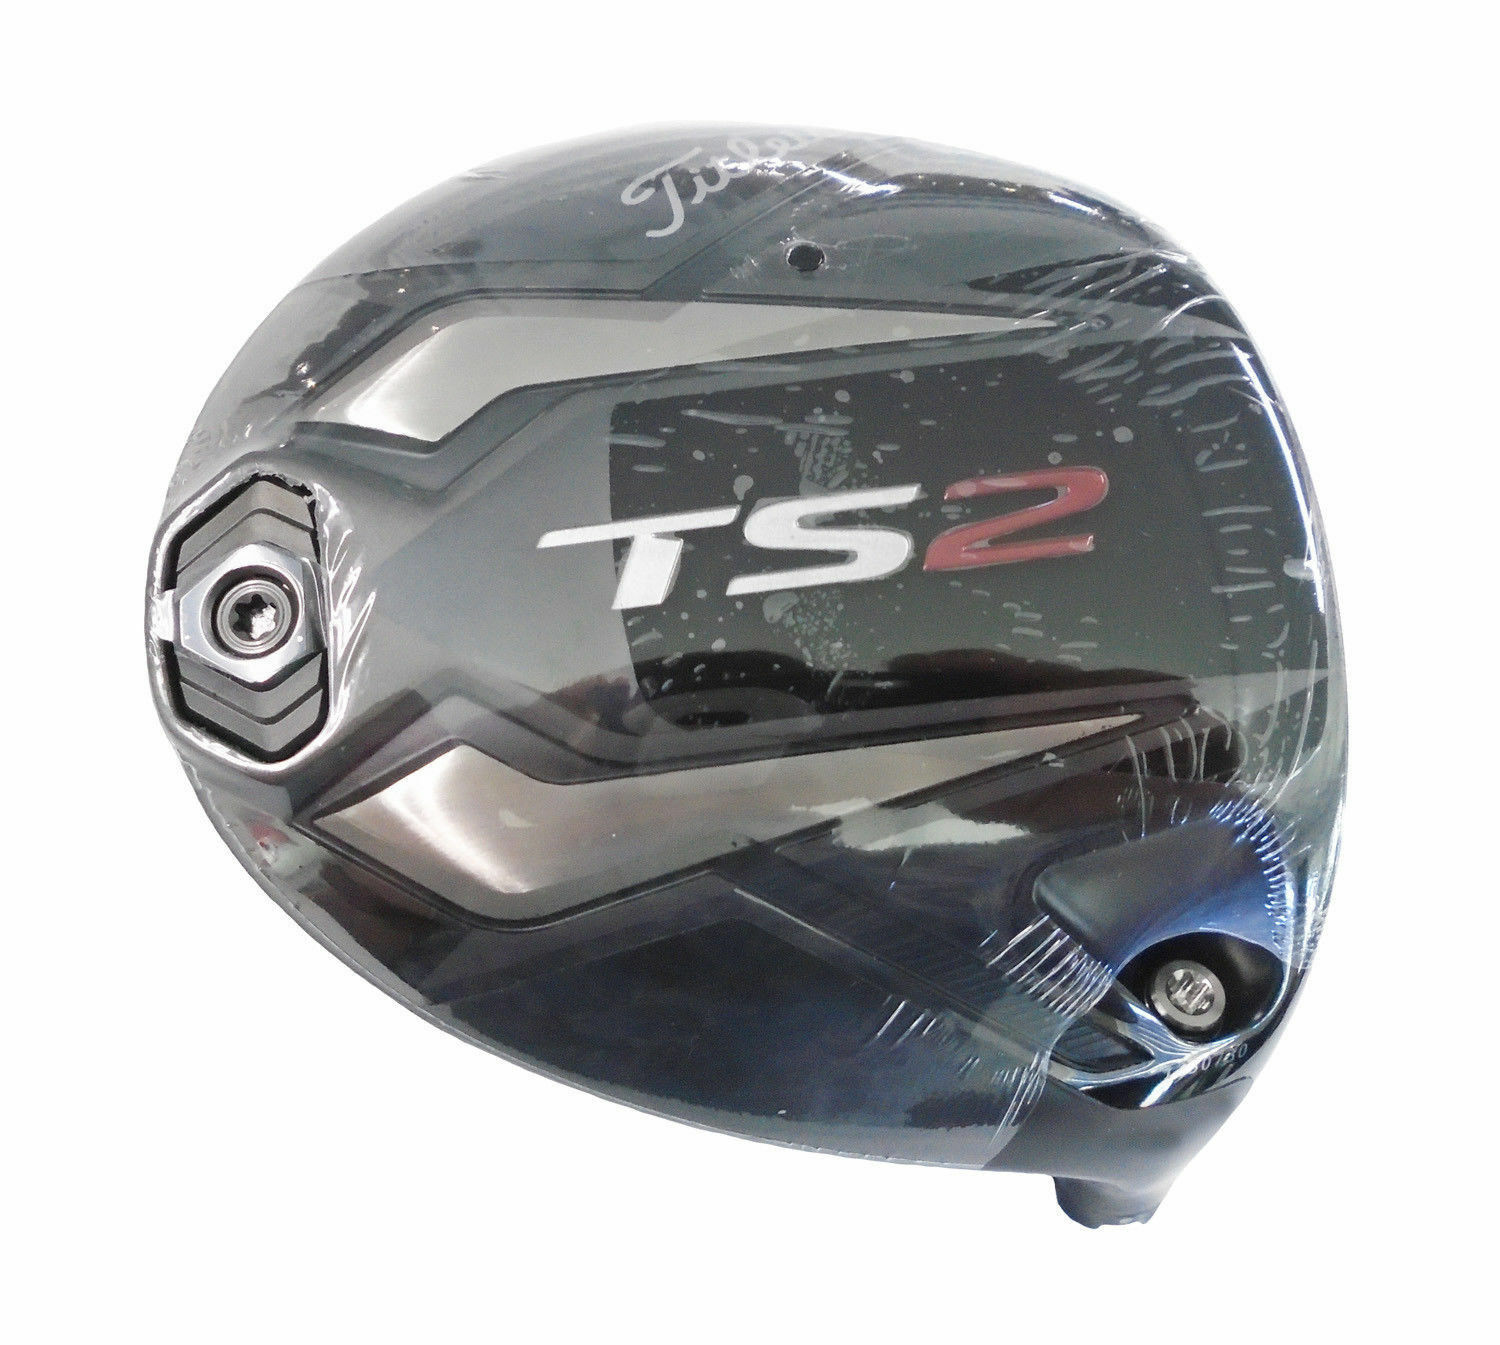 nouveau Titleist TS2 10.5 Driver HEAD ONLY